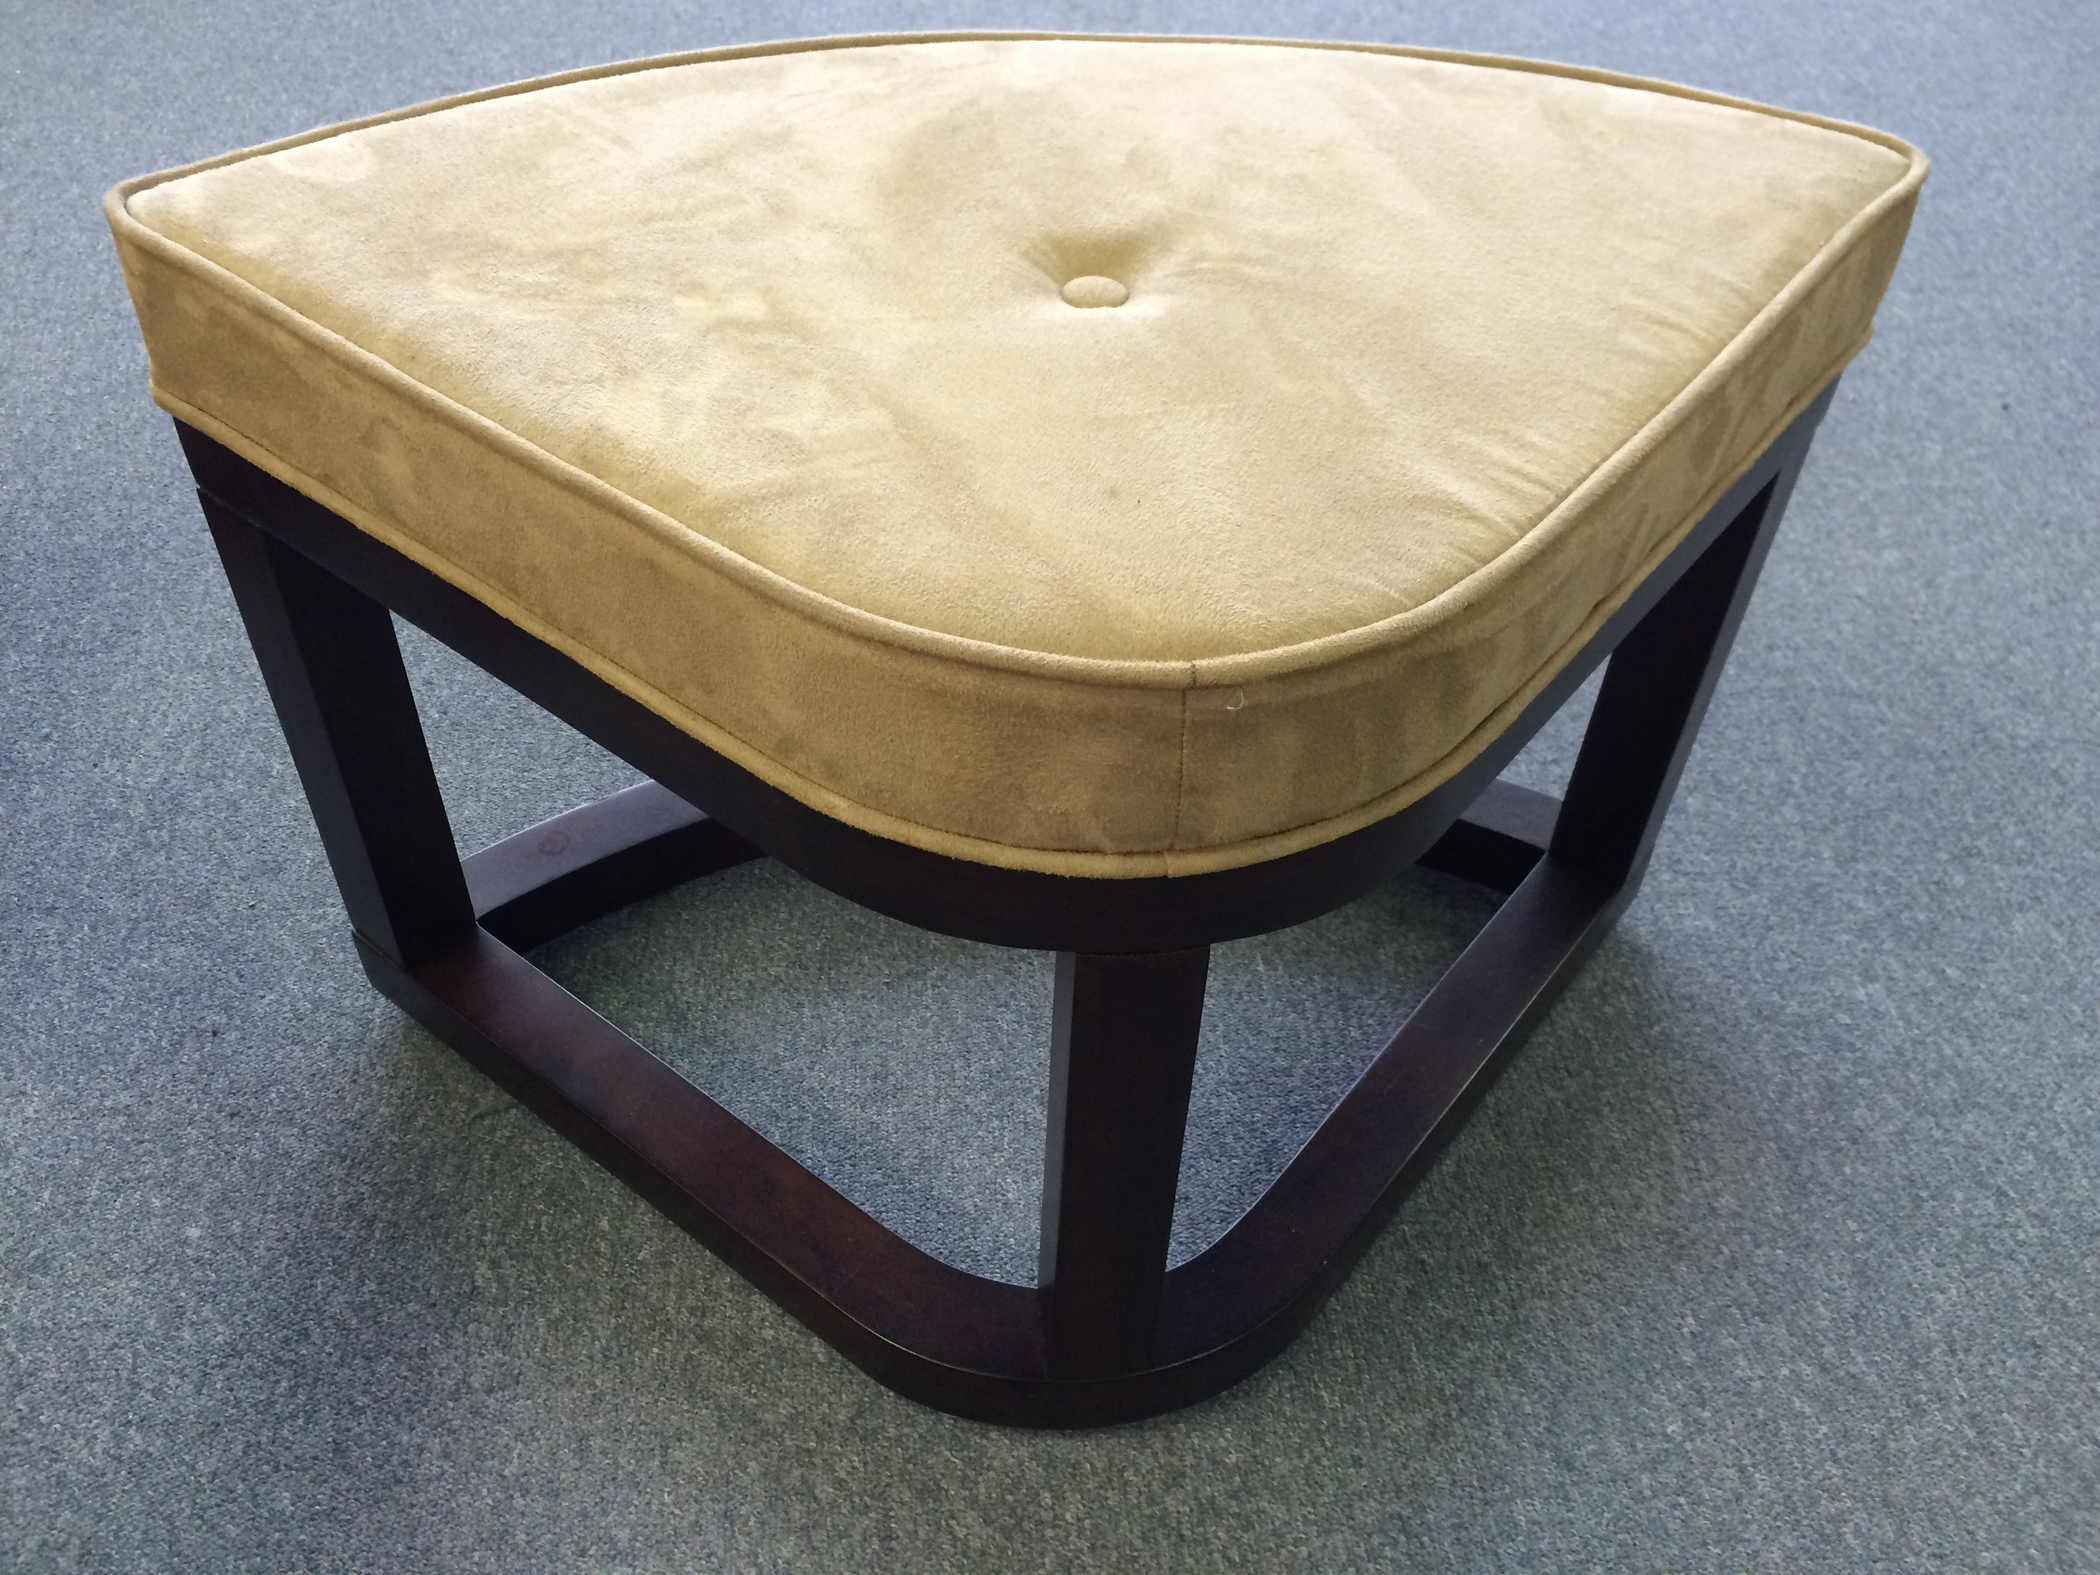 Nesting Cocktail Tables ~ Round nesting cocktail table allegheny furniture consignment